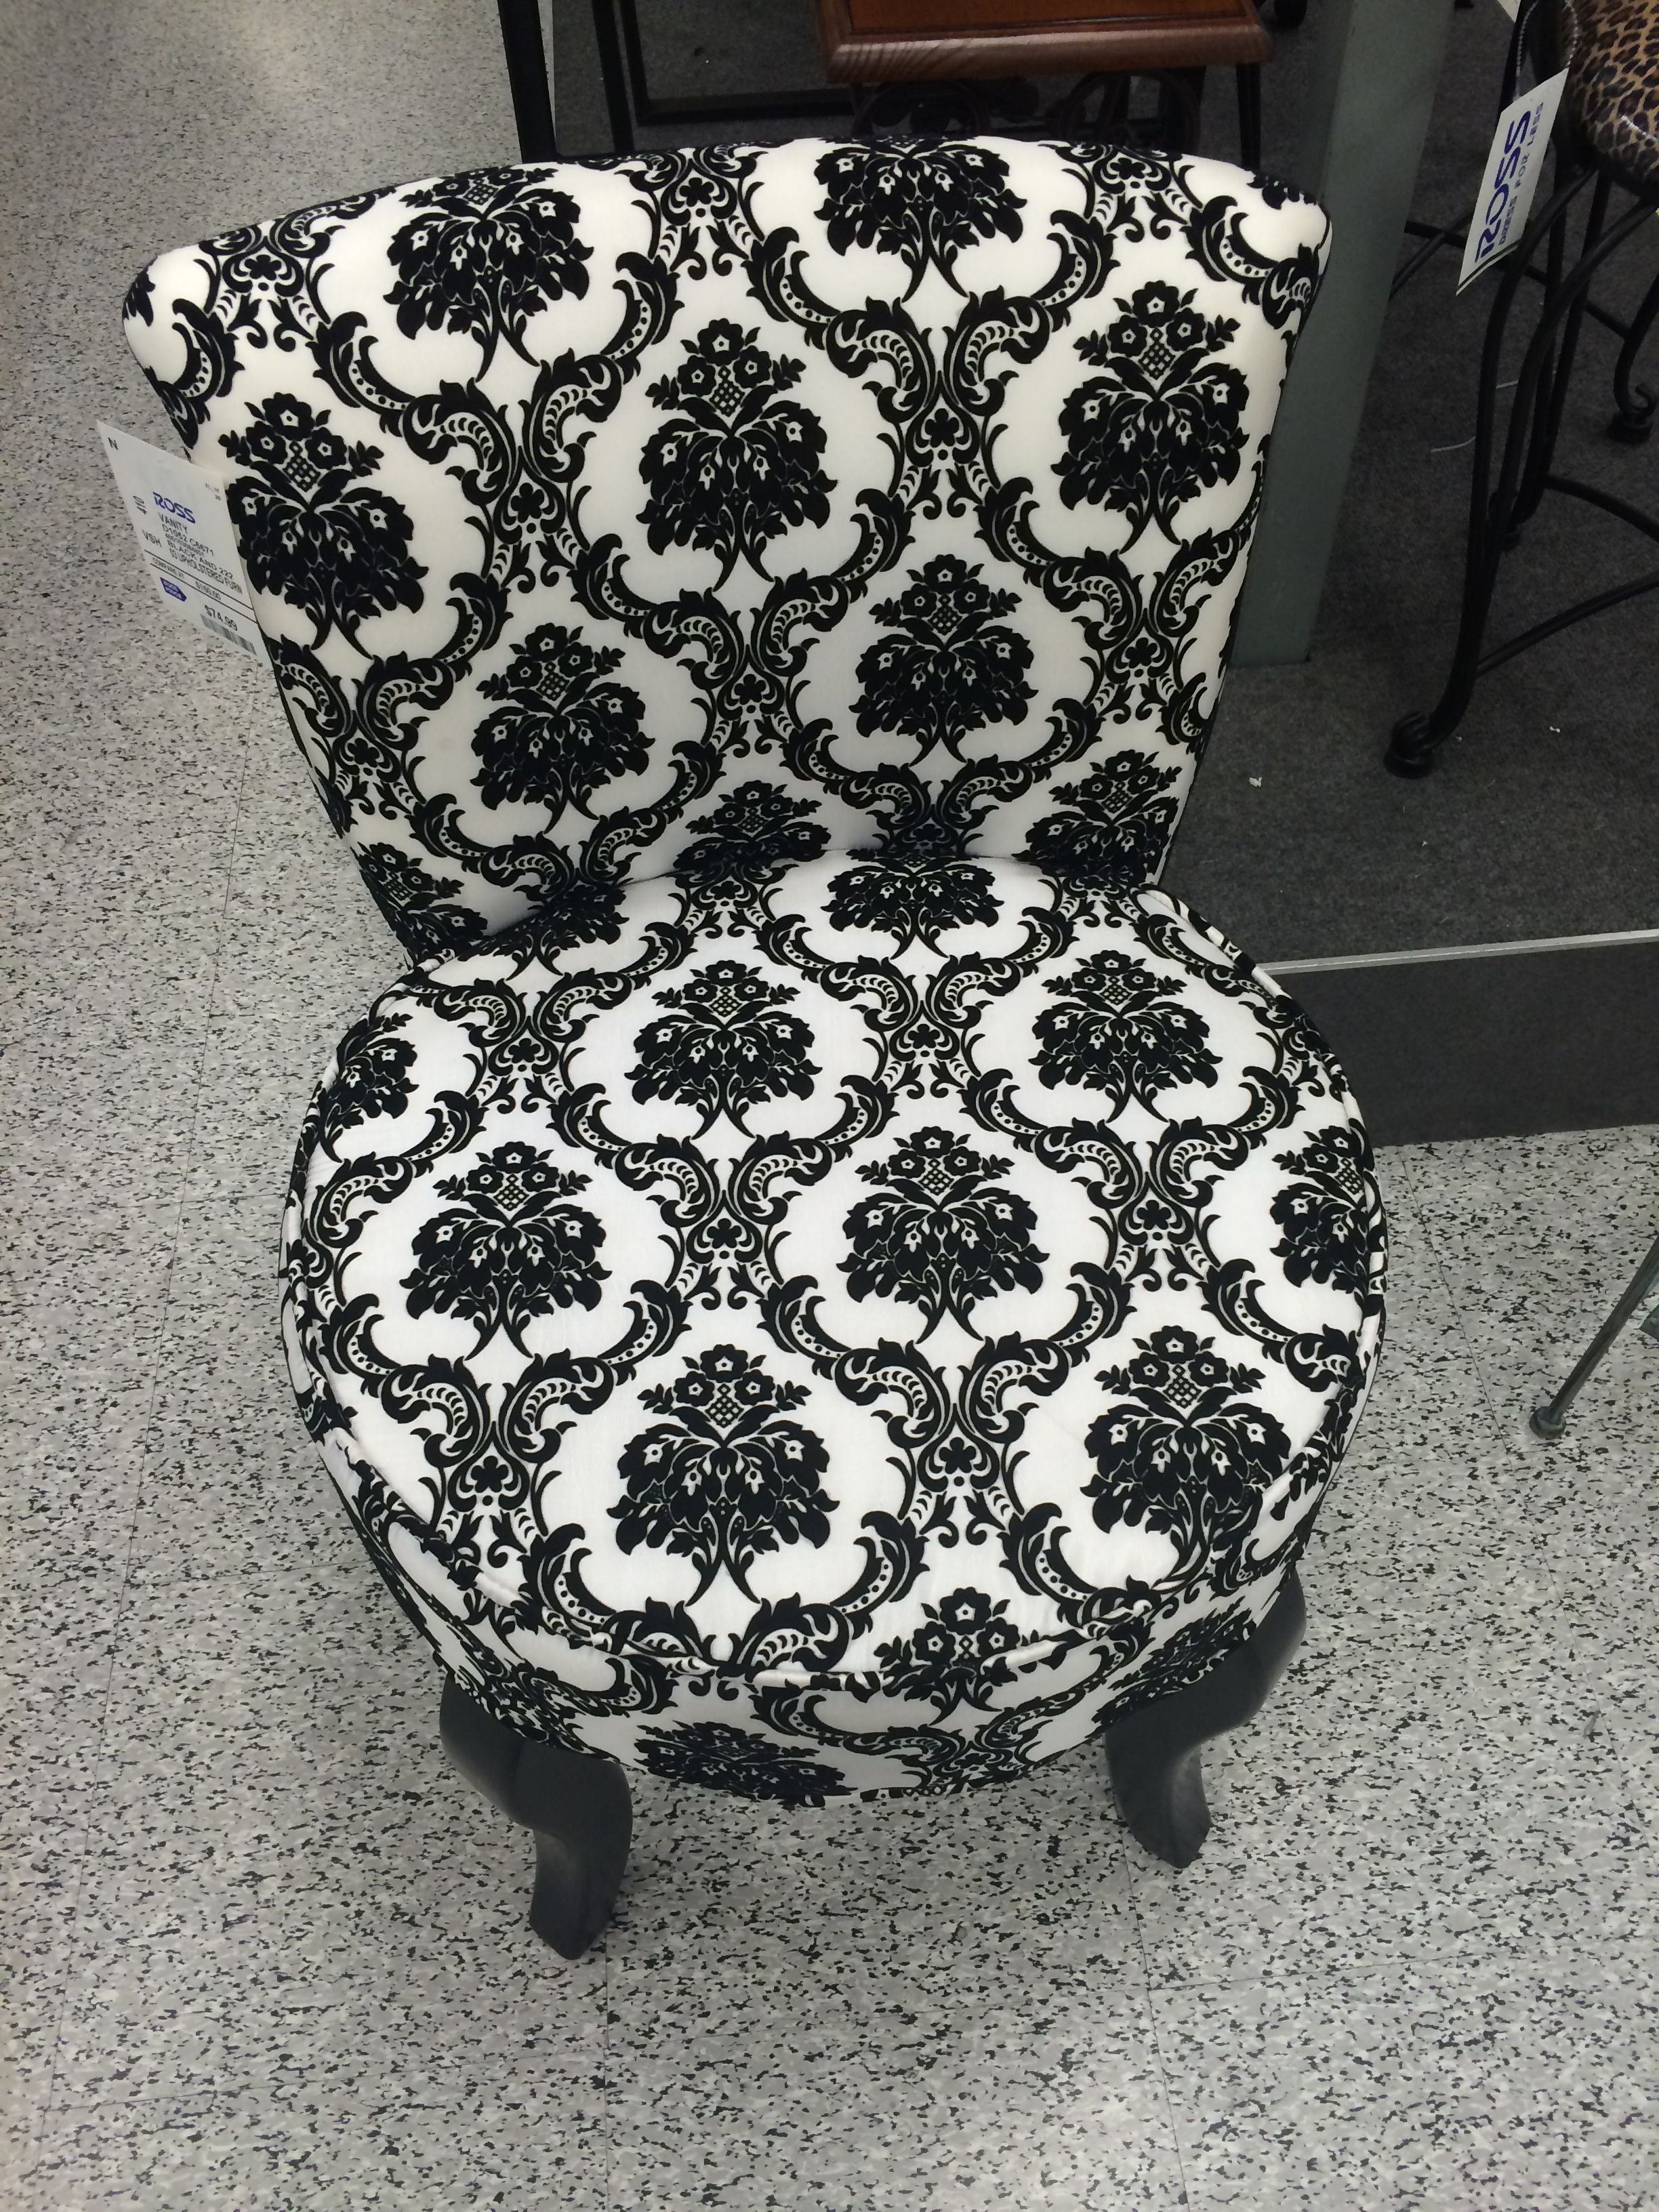 1ed3cde2dfa Chair at Ross Stores | AlL tHiNgs DaMasK! | Home decor, Kitchen ...